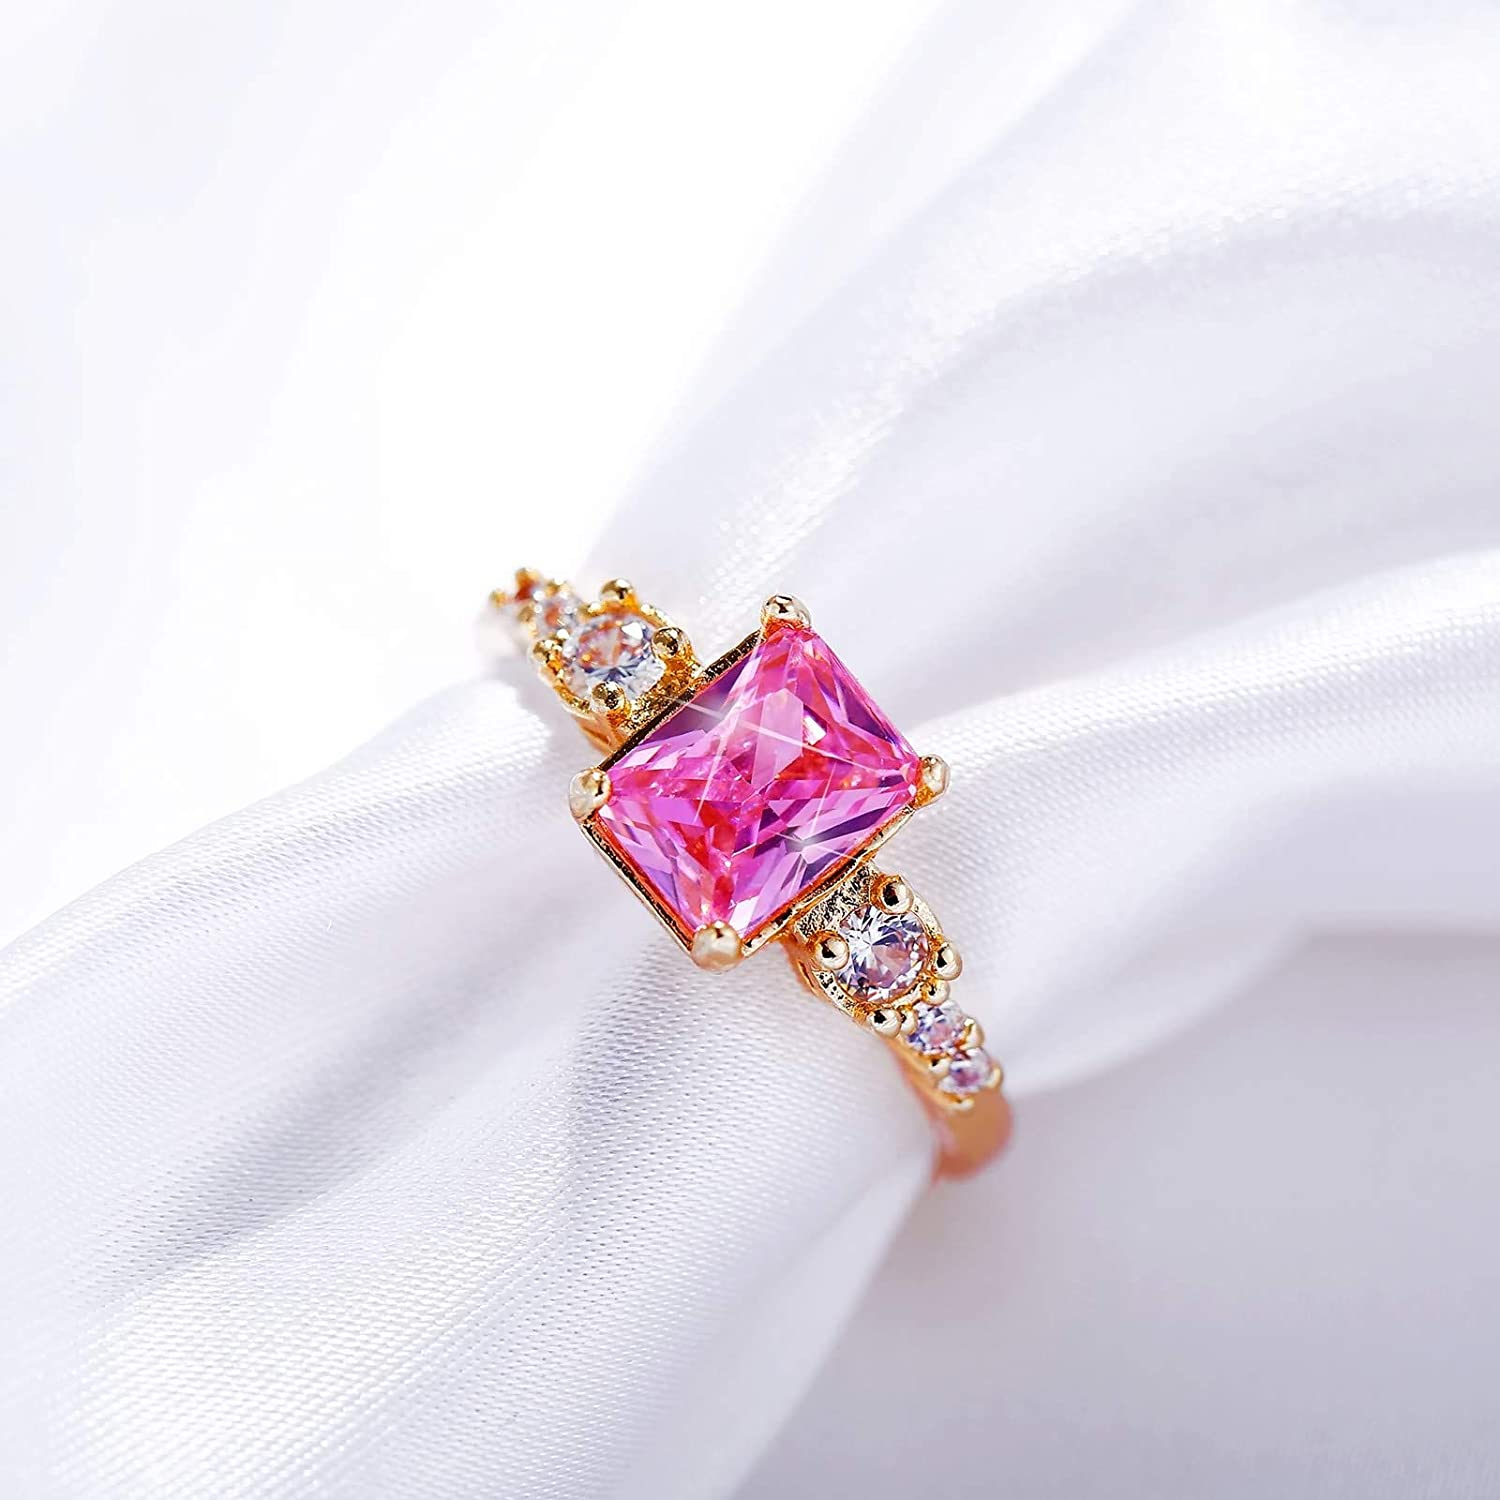 Aokarry Alloy Pink Cubic Zirconia Engagement Anniversary Ring for Women Gold Plated Size 7